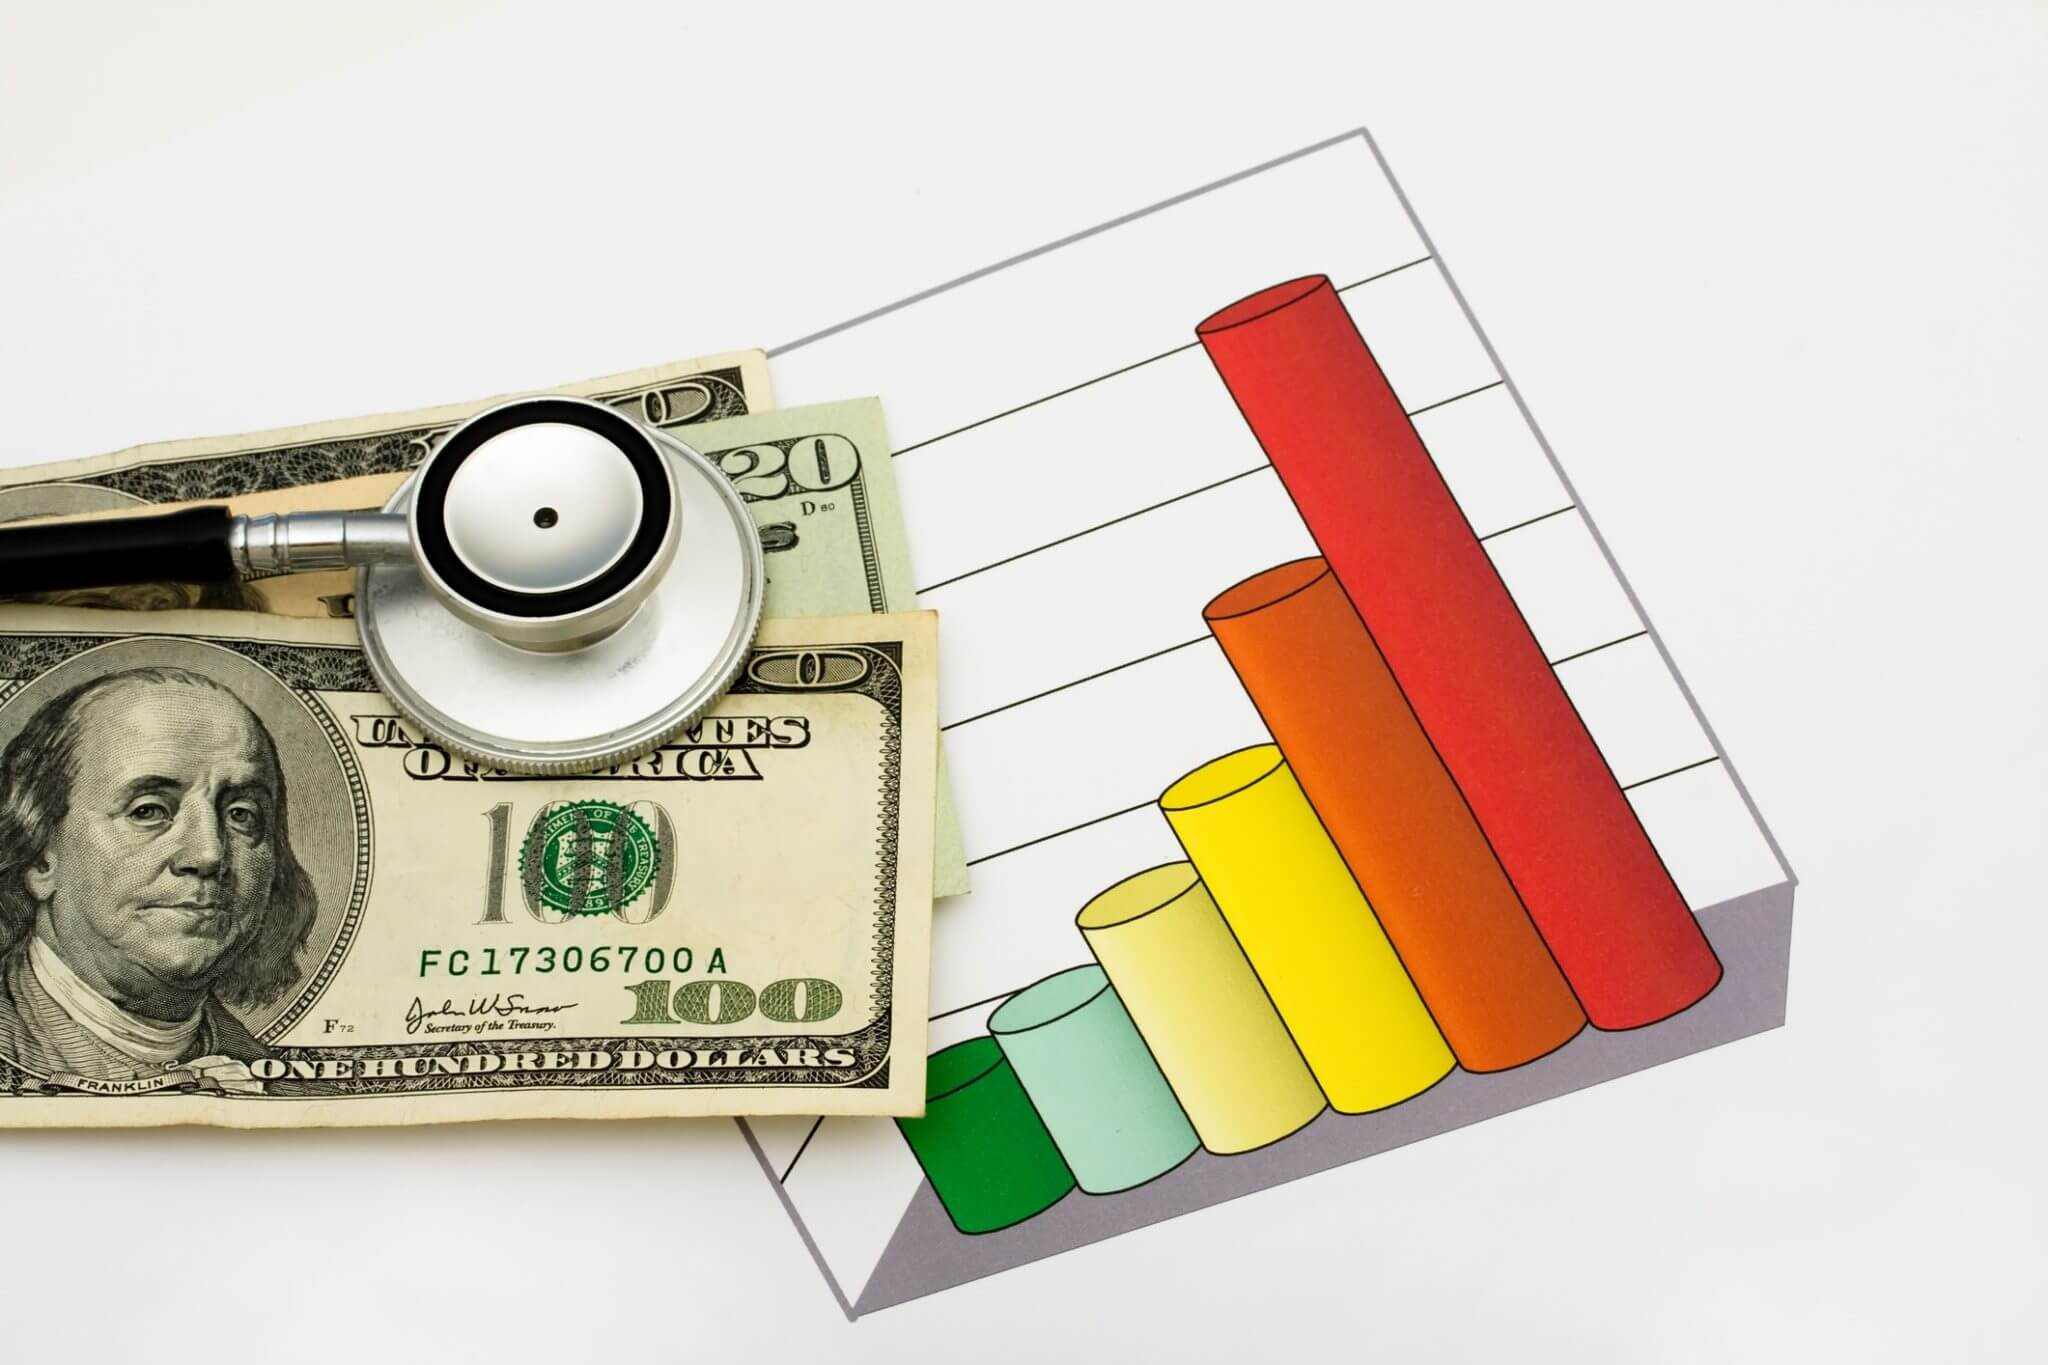 Image of stethoscope, money, and graph